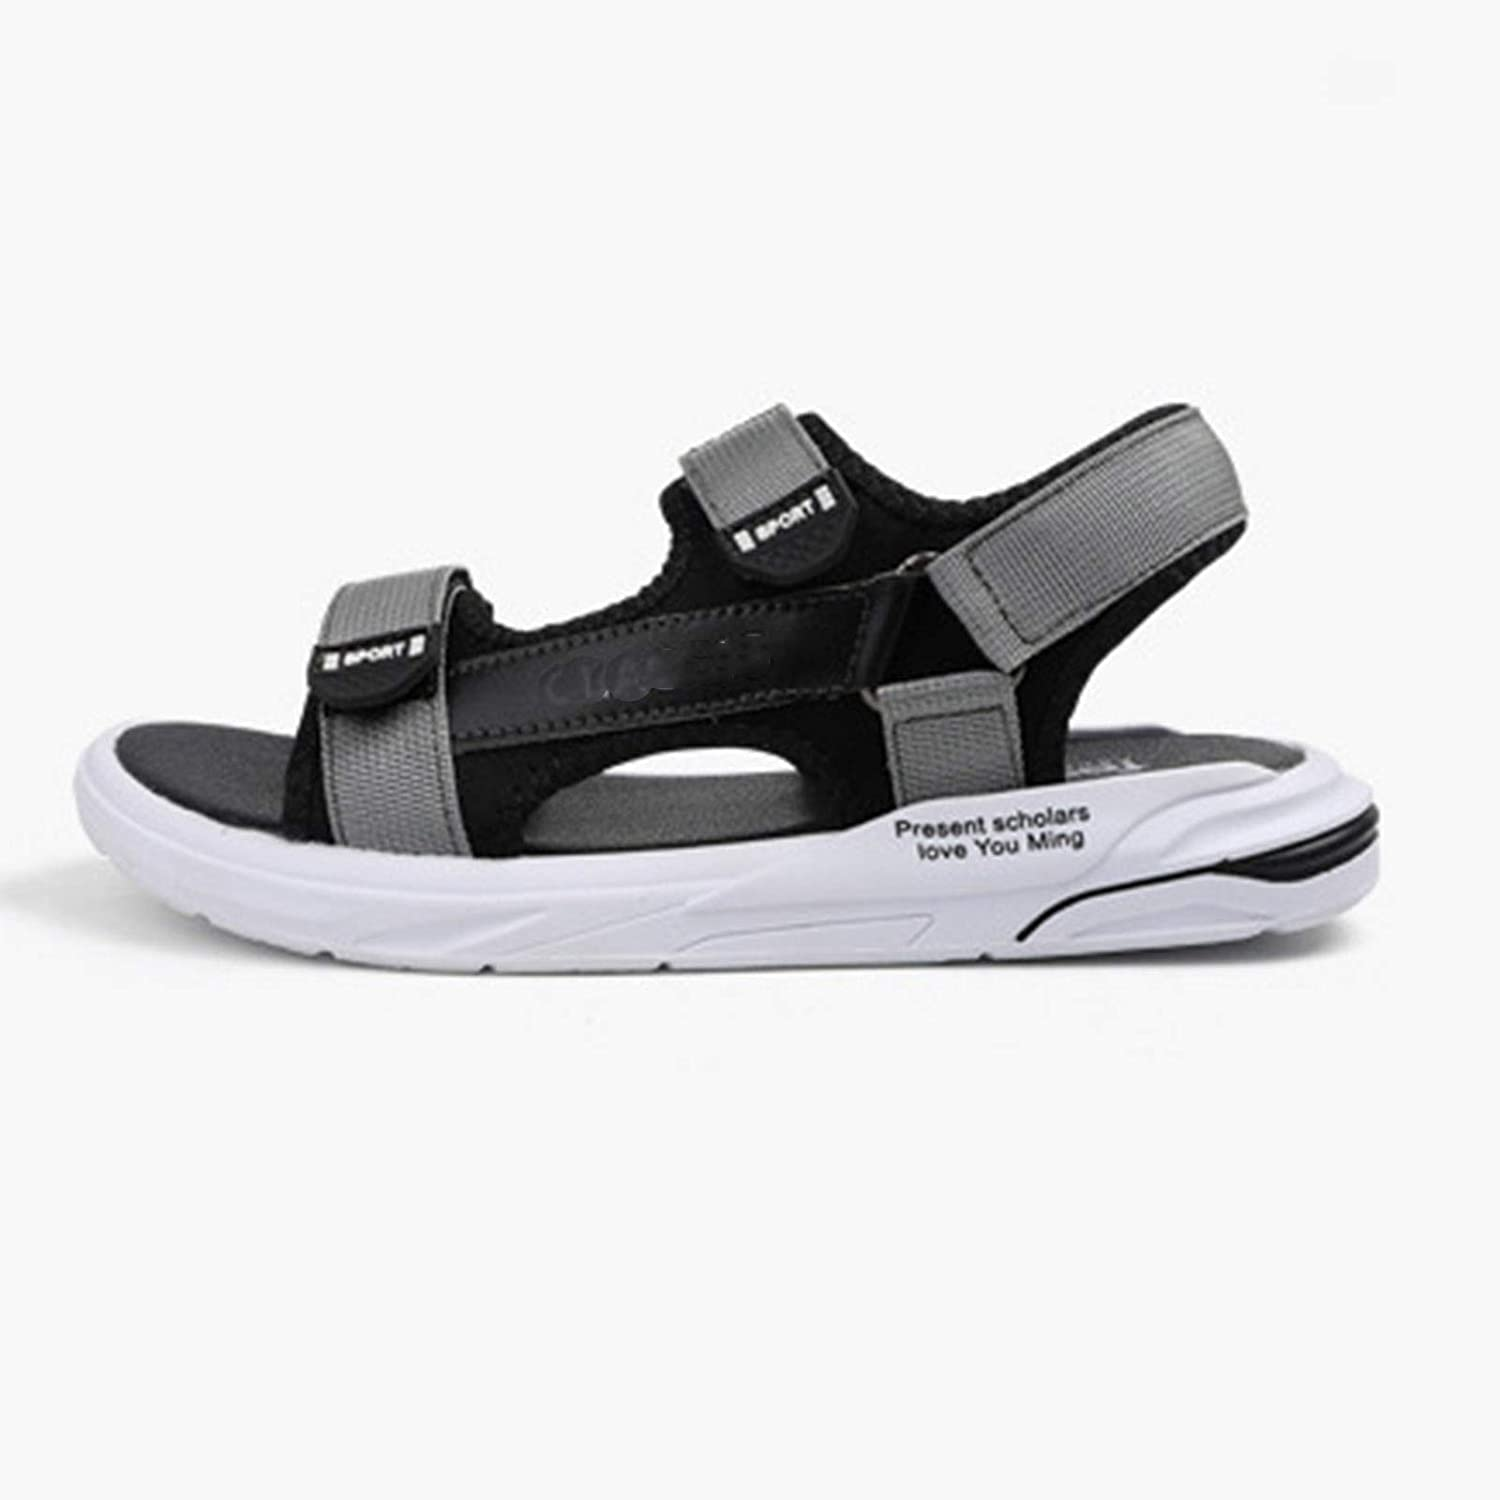 Women Outdoor Walking Sandals Womens Athletic Hiking Open Toe Sports Wedge Wide Sandles with Adjustable Buckle Lightweight Stylish Summer Beach Water Shoes (Color : Gray, Size : 44)